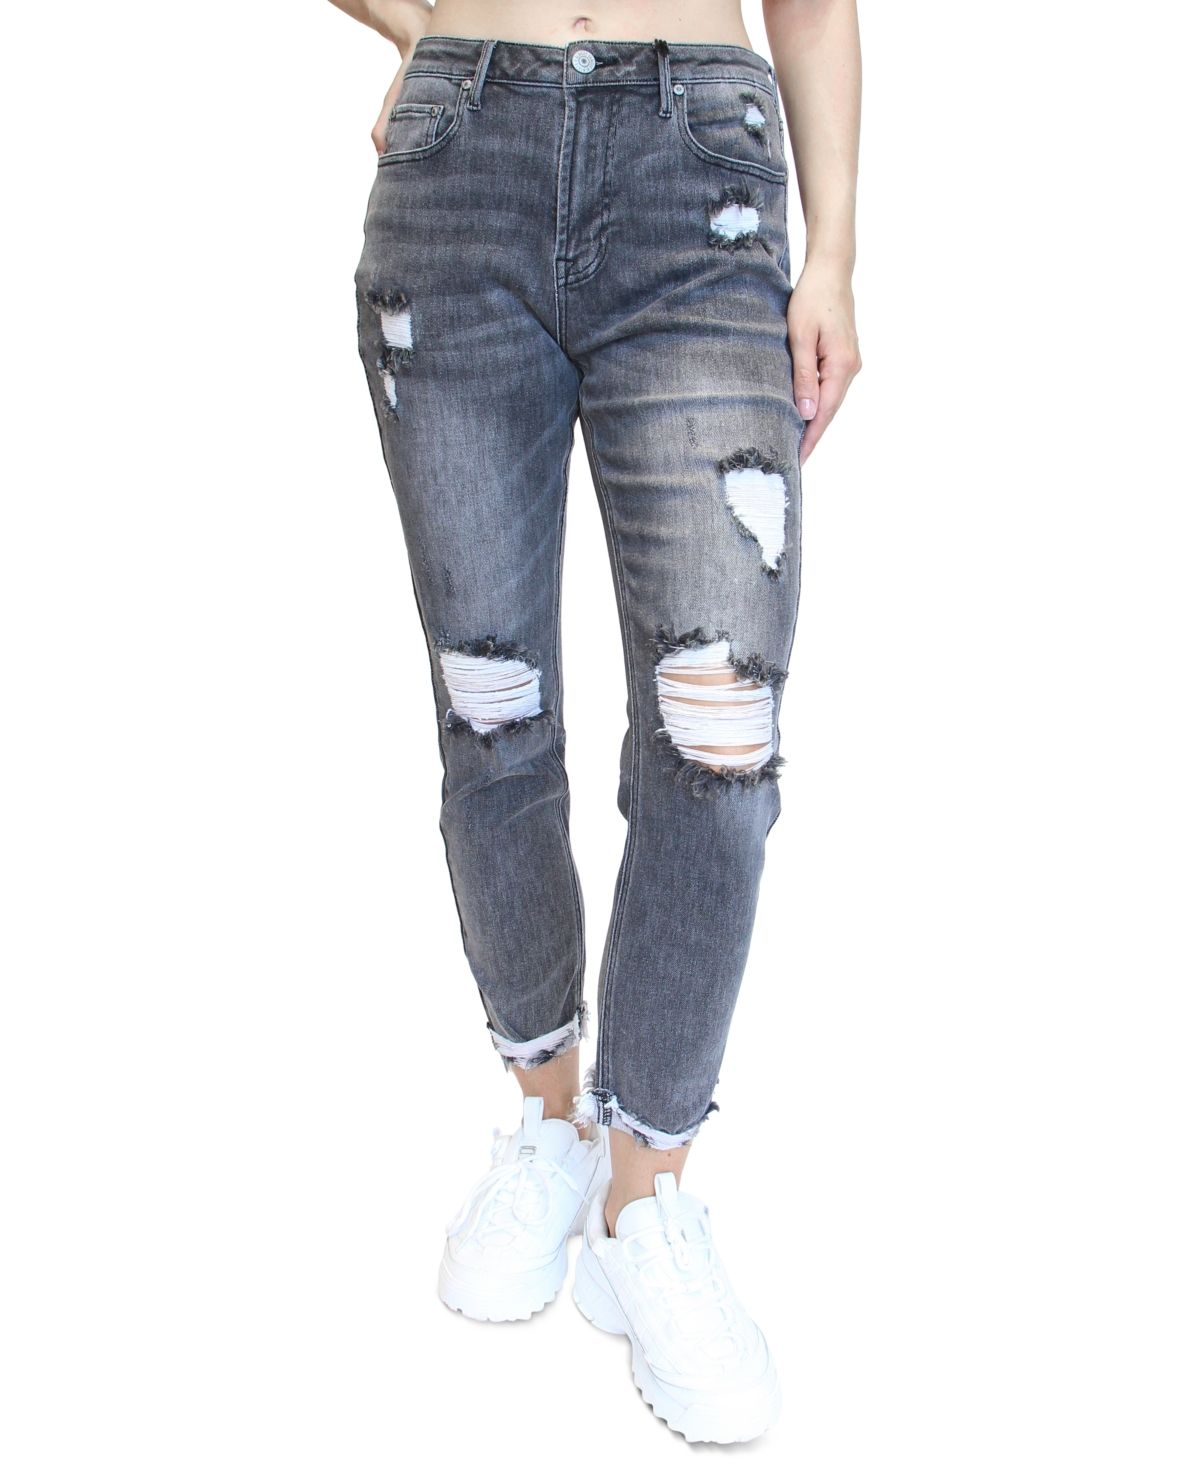 These high-rise mom jeans from Almost Famous are instantly cool with destructed details and a touch of stretch.